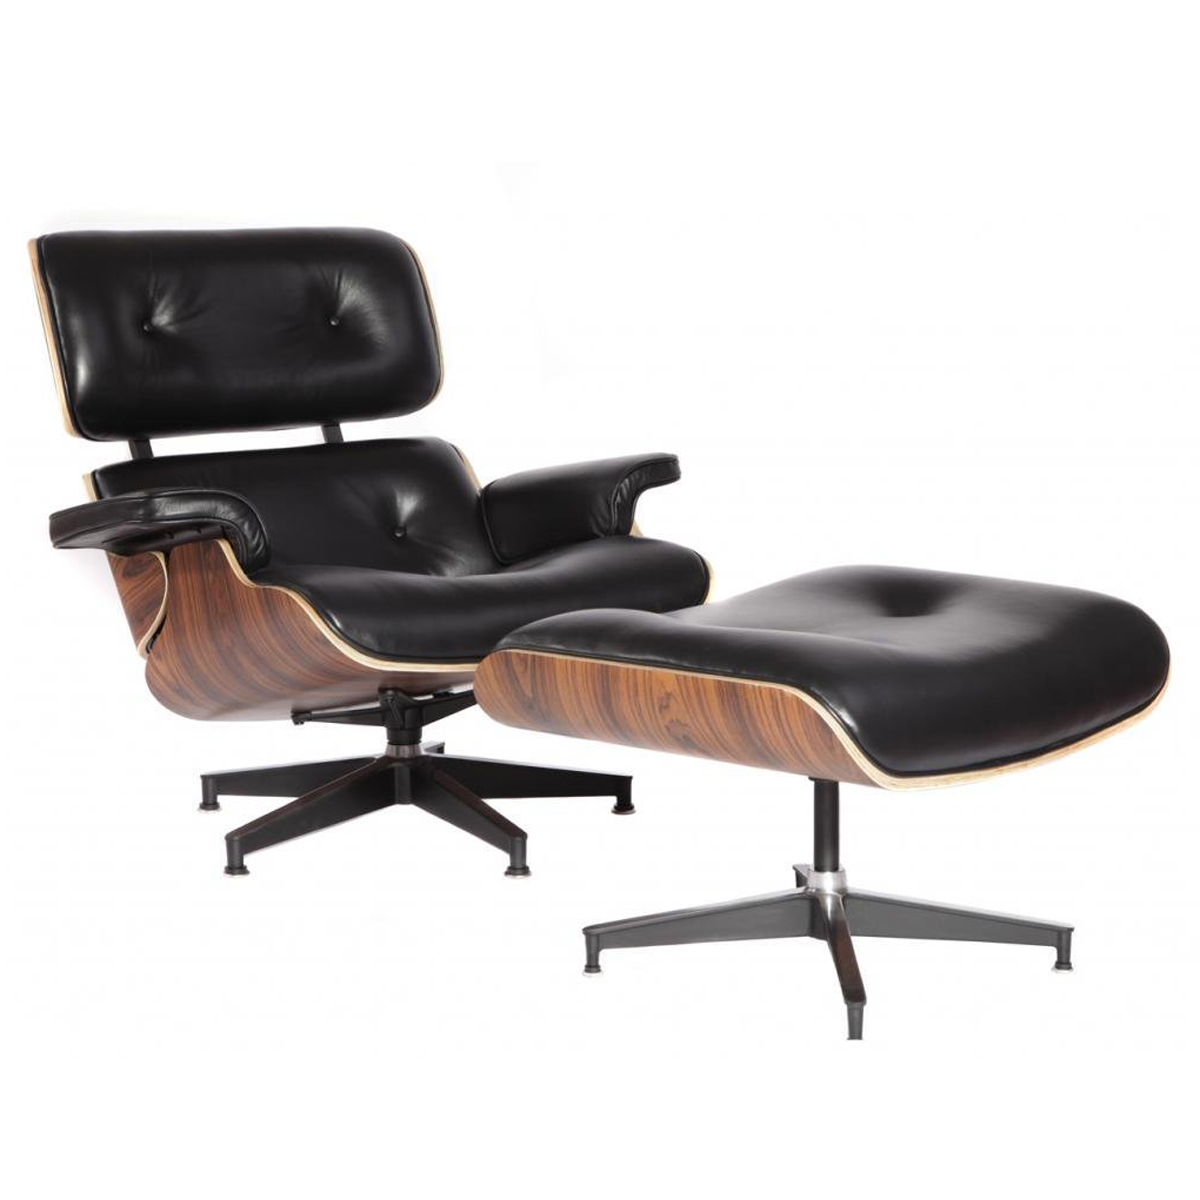 MCM Eames Style Lounge Chair With Ottoman, Black